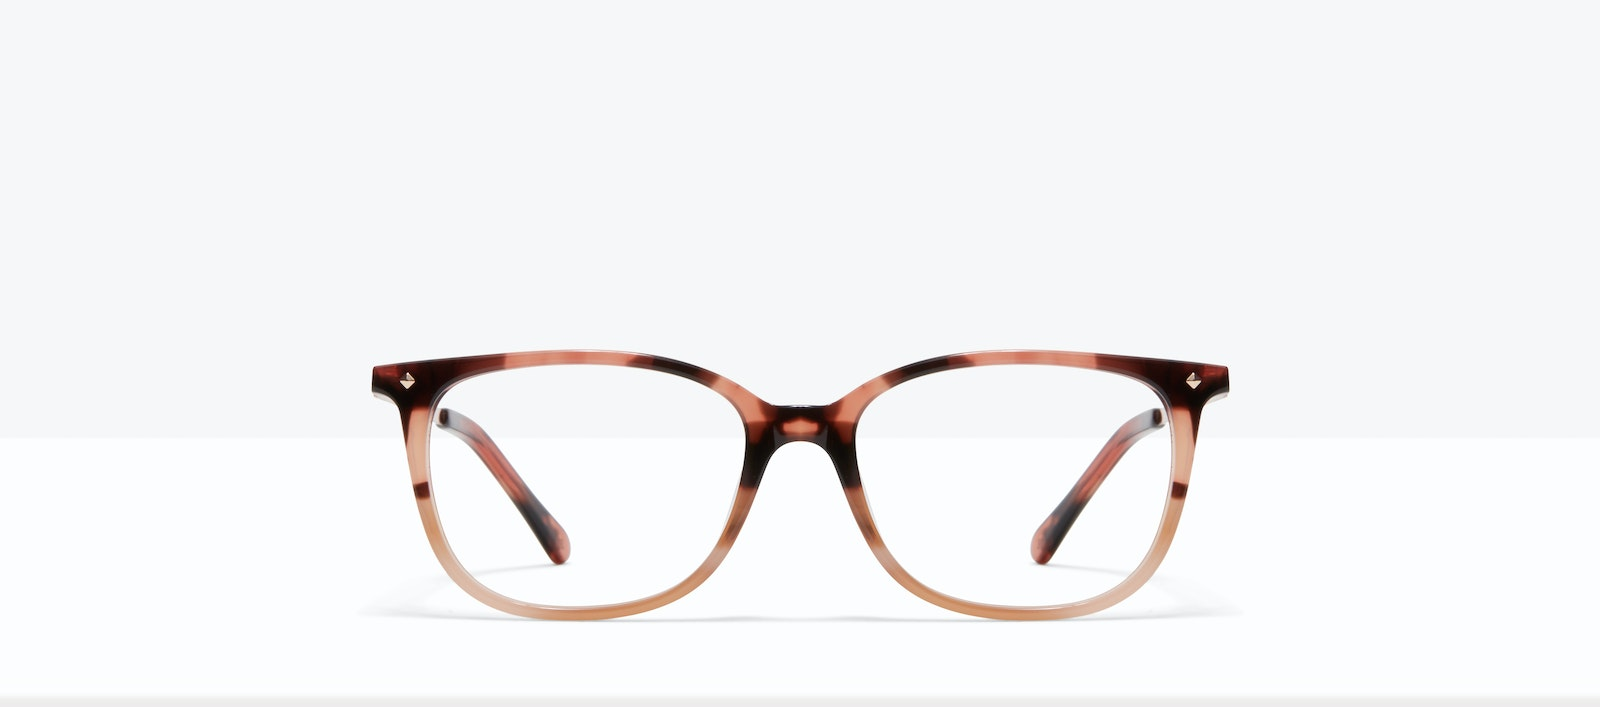 Affordable Fashion Glasses Rectangle Square Eyeglasses Women Refine M Two Tone Pink Tort Front